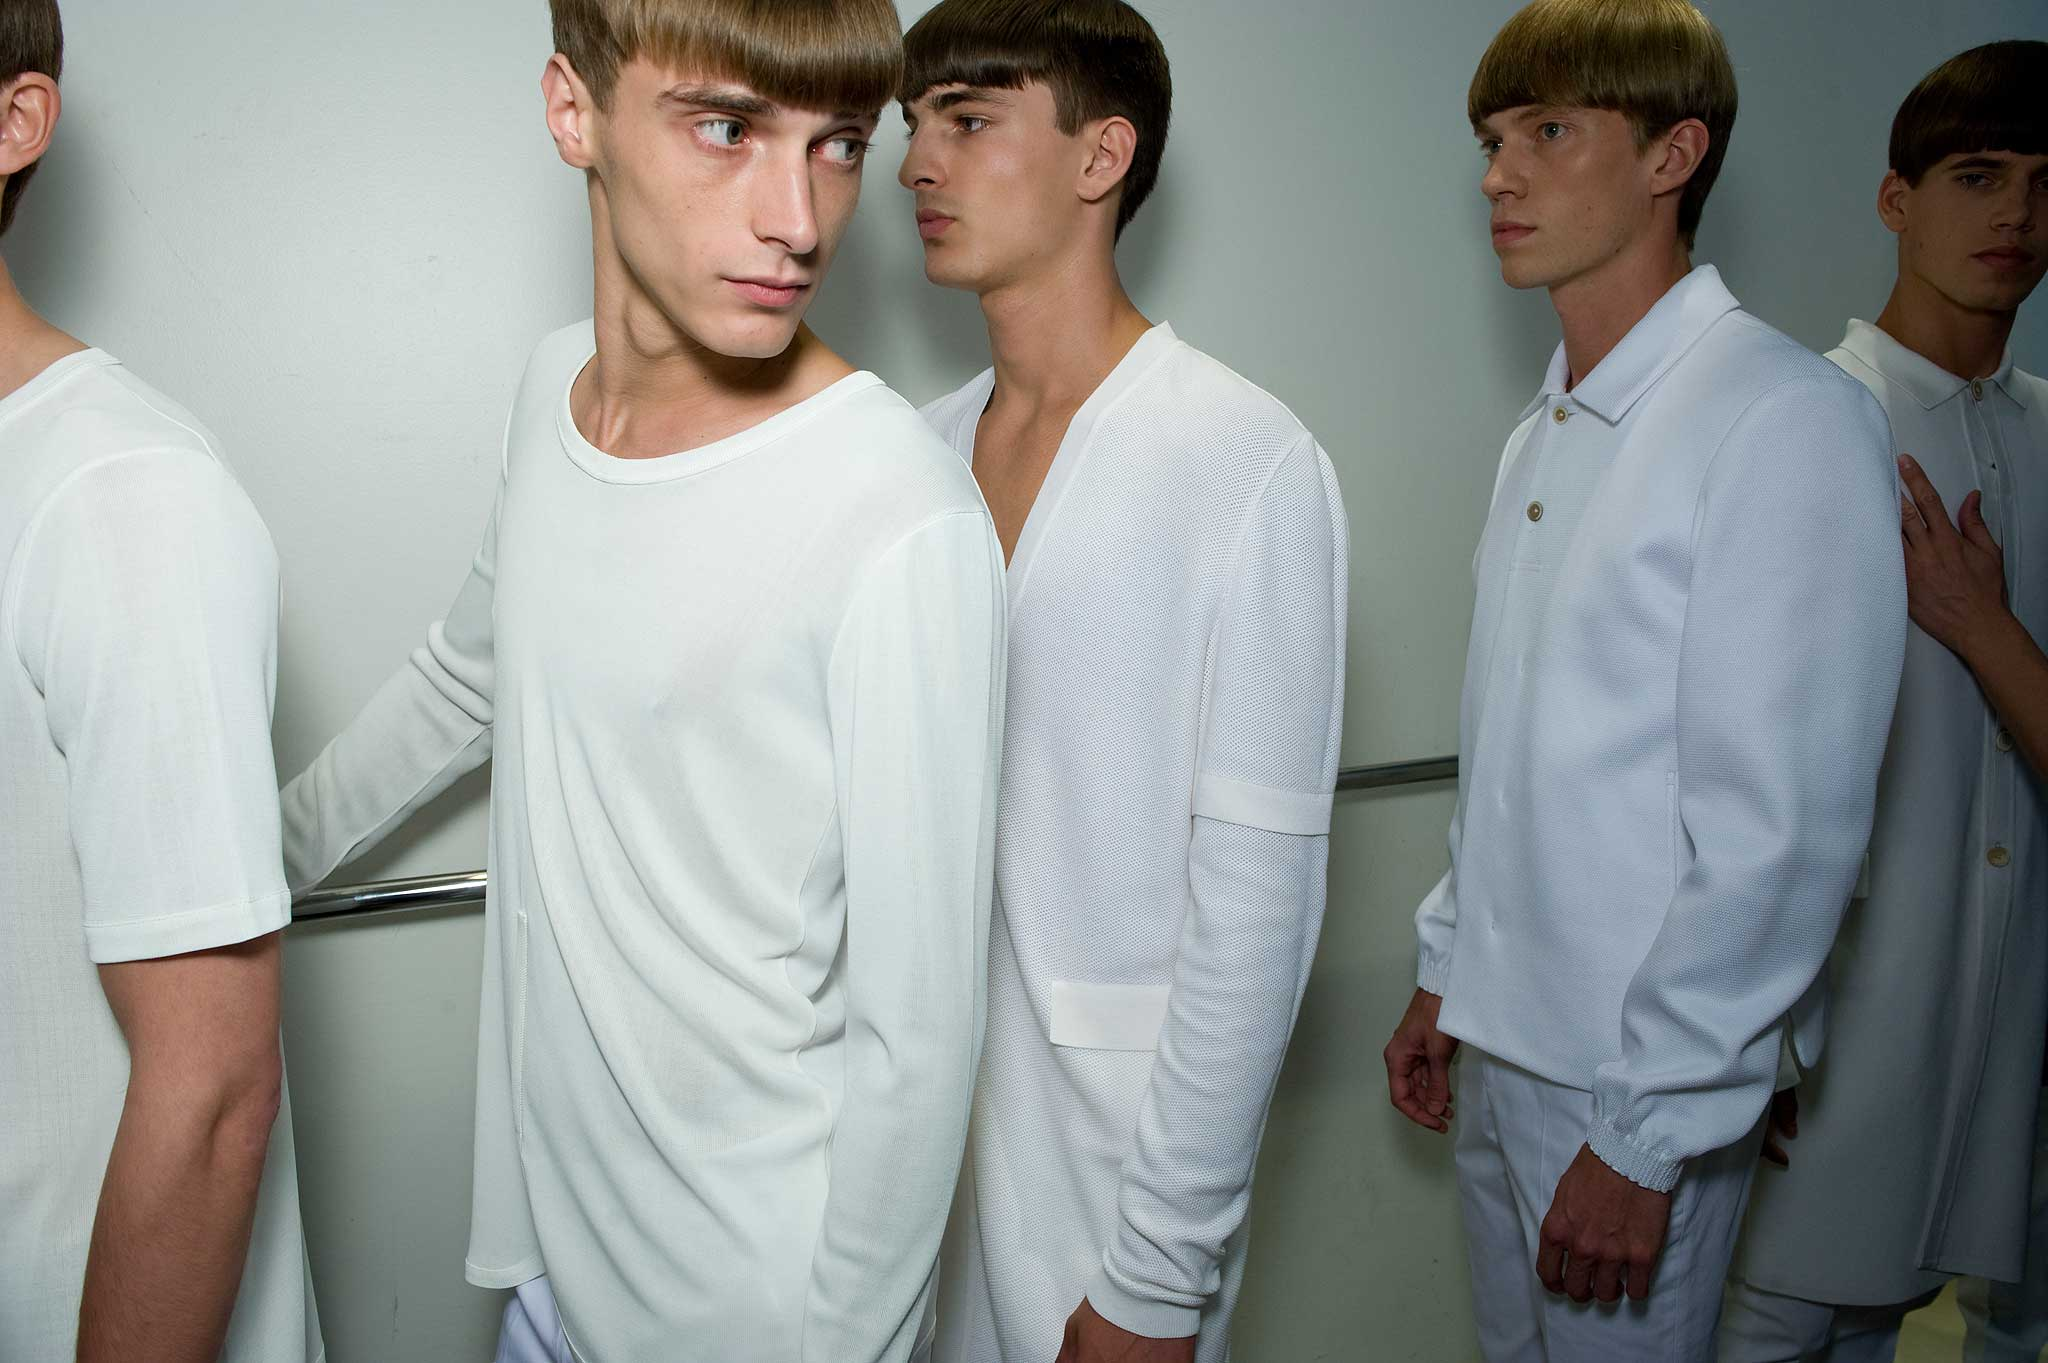 Backstage during Presentation Jil Sander Collection Spring/Summer 2010 by Raf Simons.